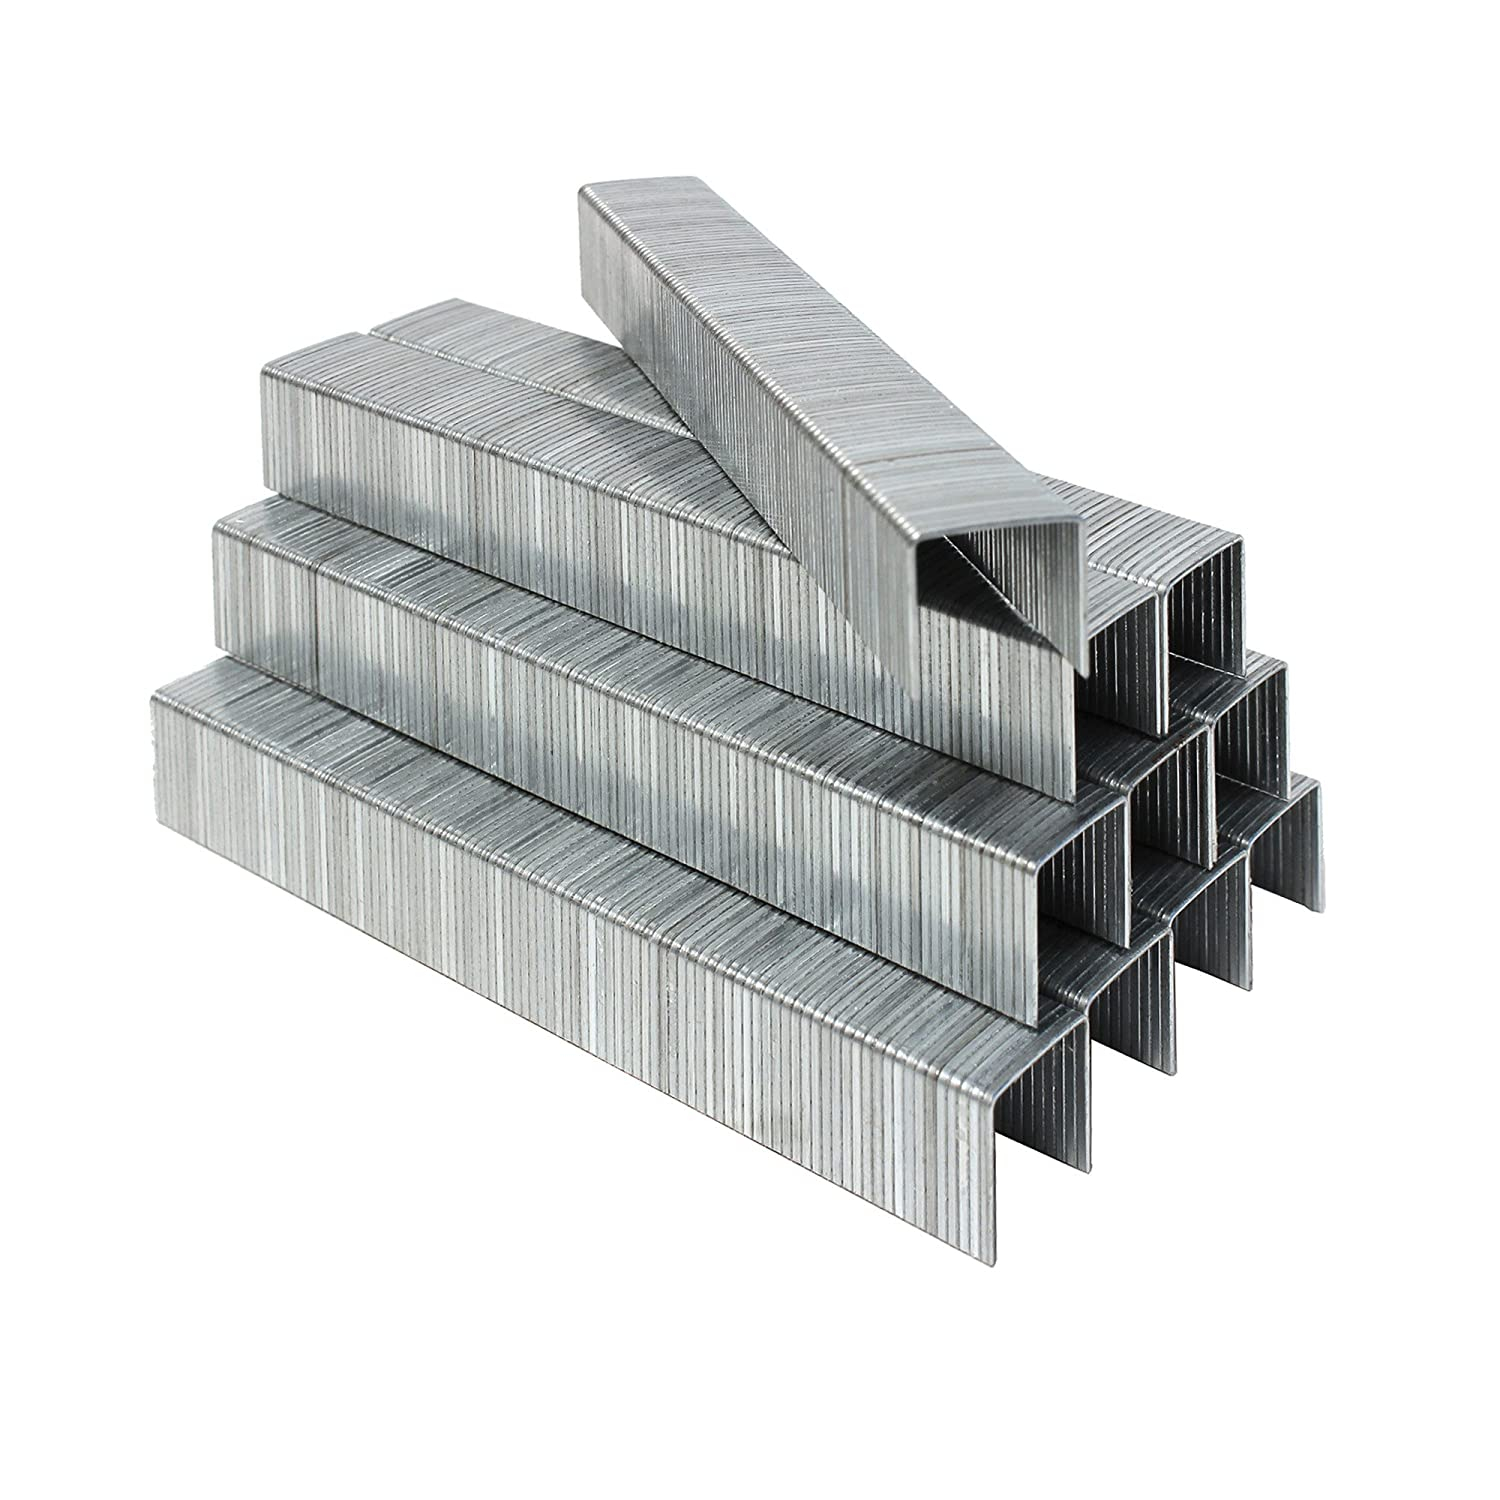 1000 Staples, Staples, Staples, Staples for Stapler Size to Choose from VARO